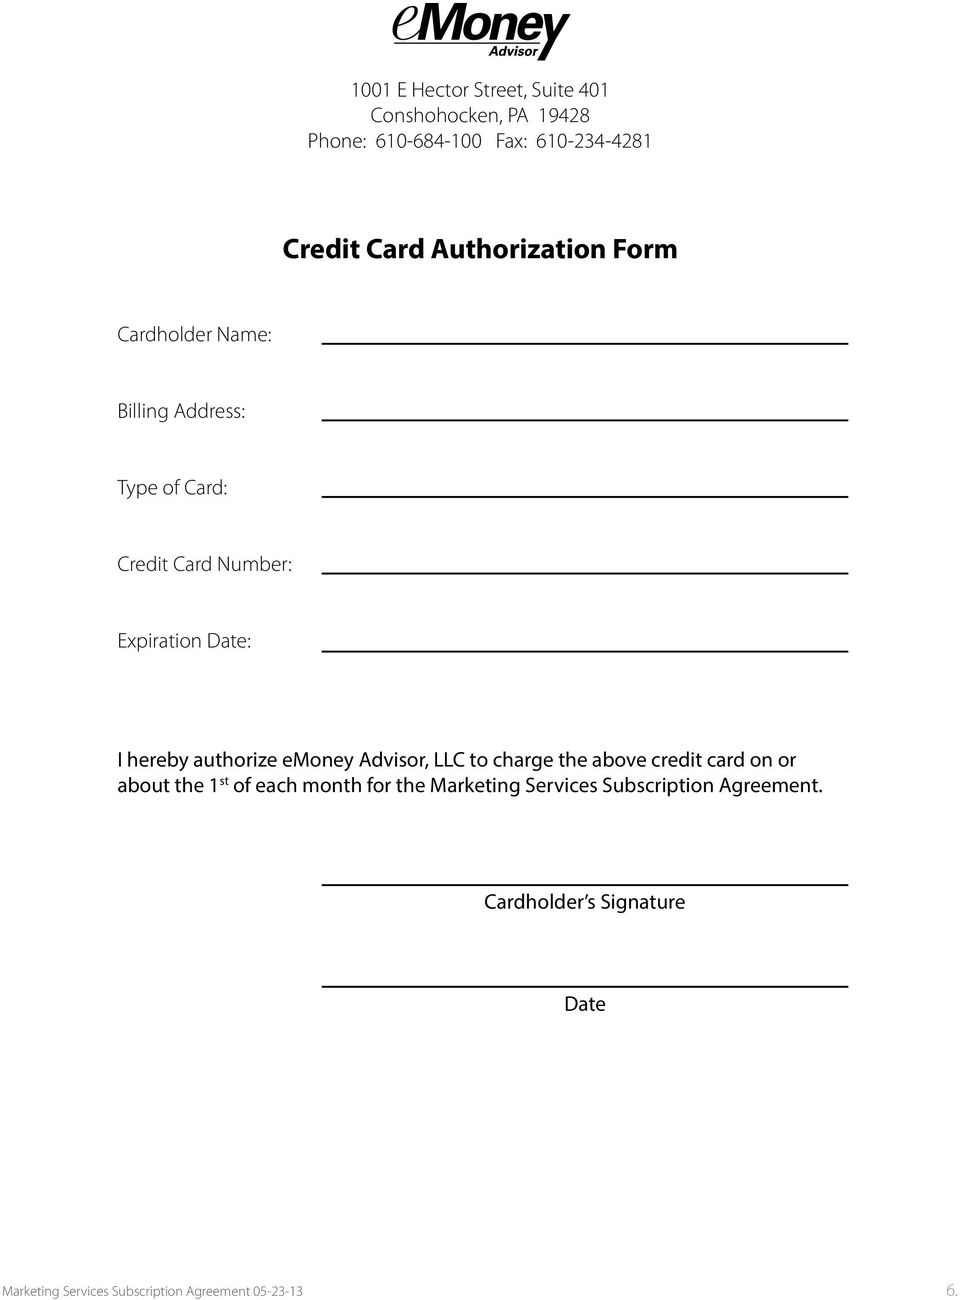 hereby authorize emoney Advisor, LLC to charge the above credit card on or about the 1 st of each month for the